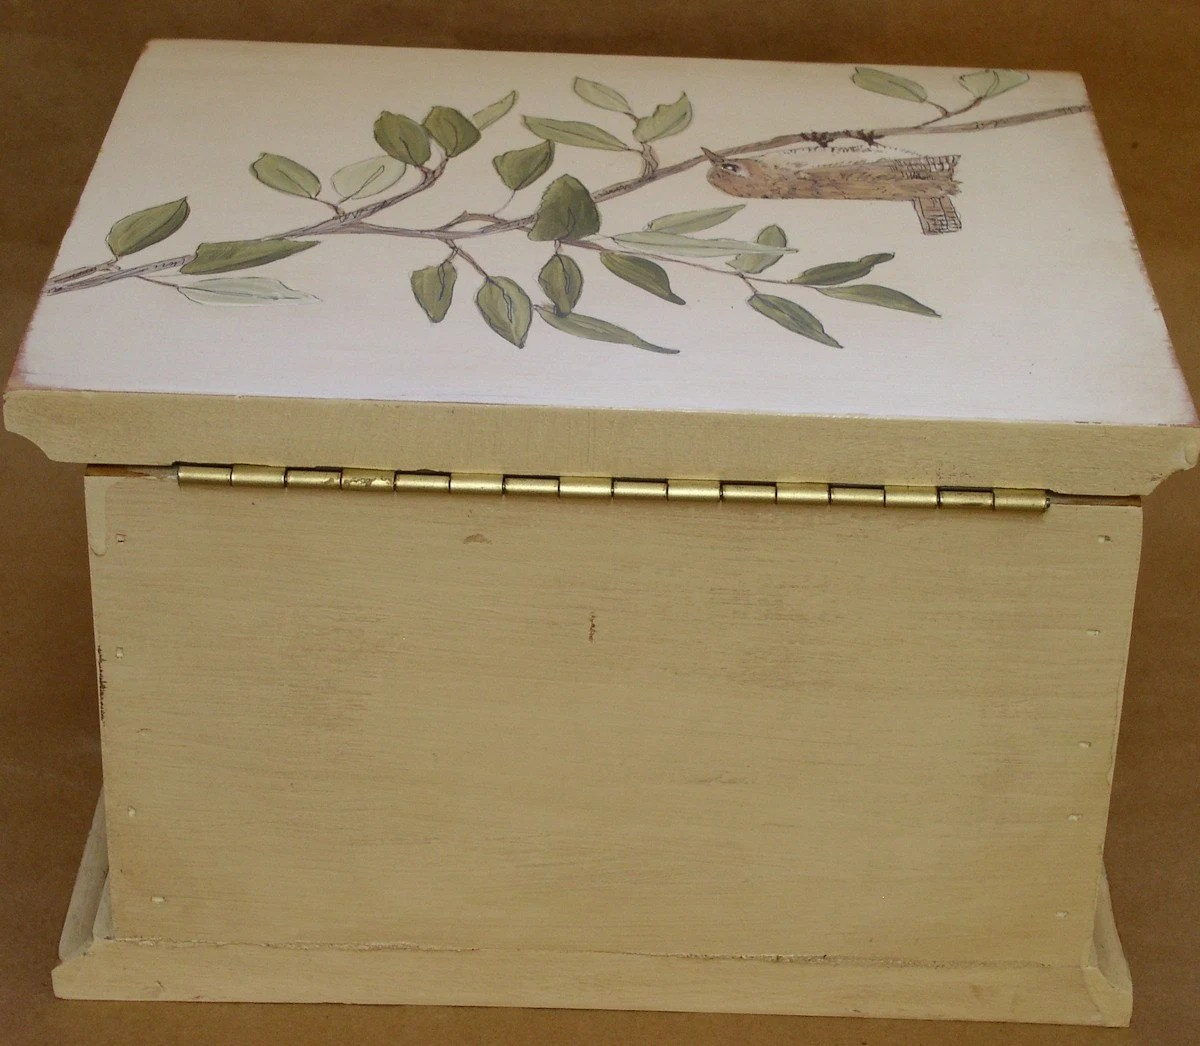 Handpainted Hinged Wood Box with Birds on Tree Branch